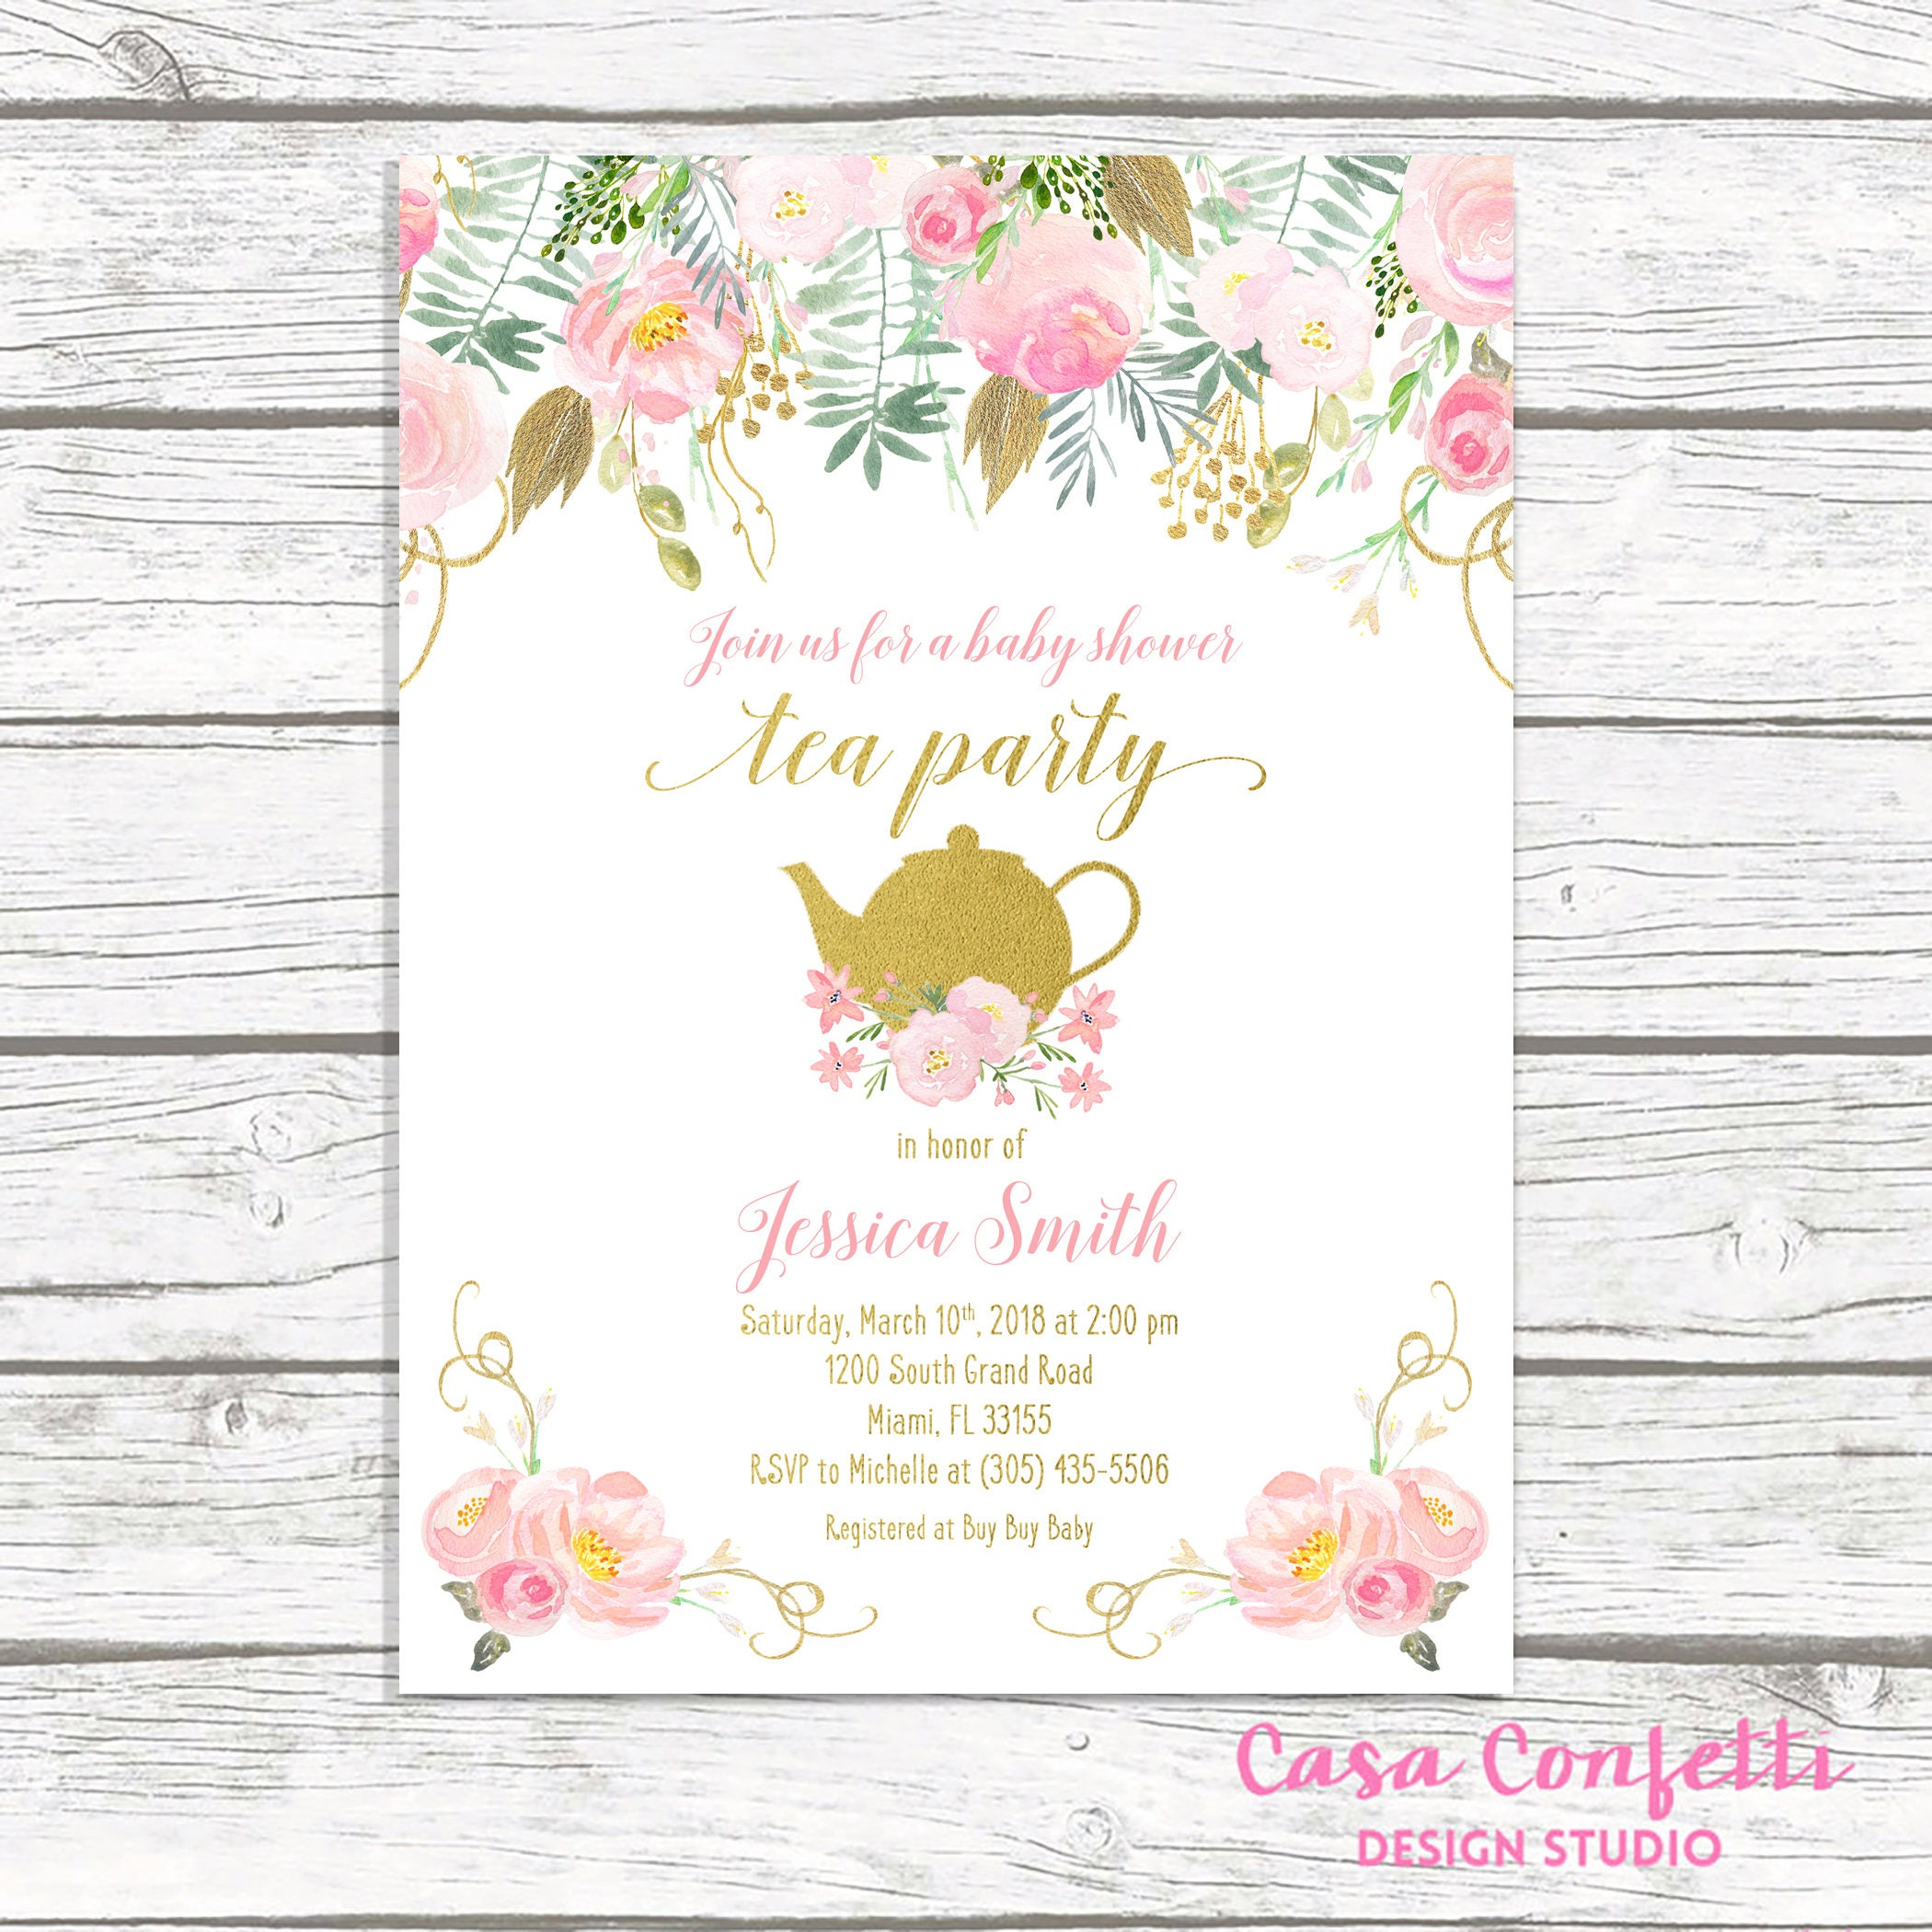 Tea Party Baby Shower Invitation, Tea Party Invitation, Baby Shower ...